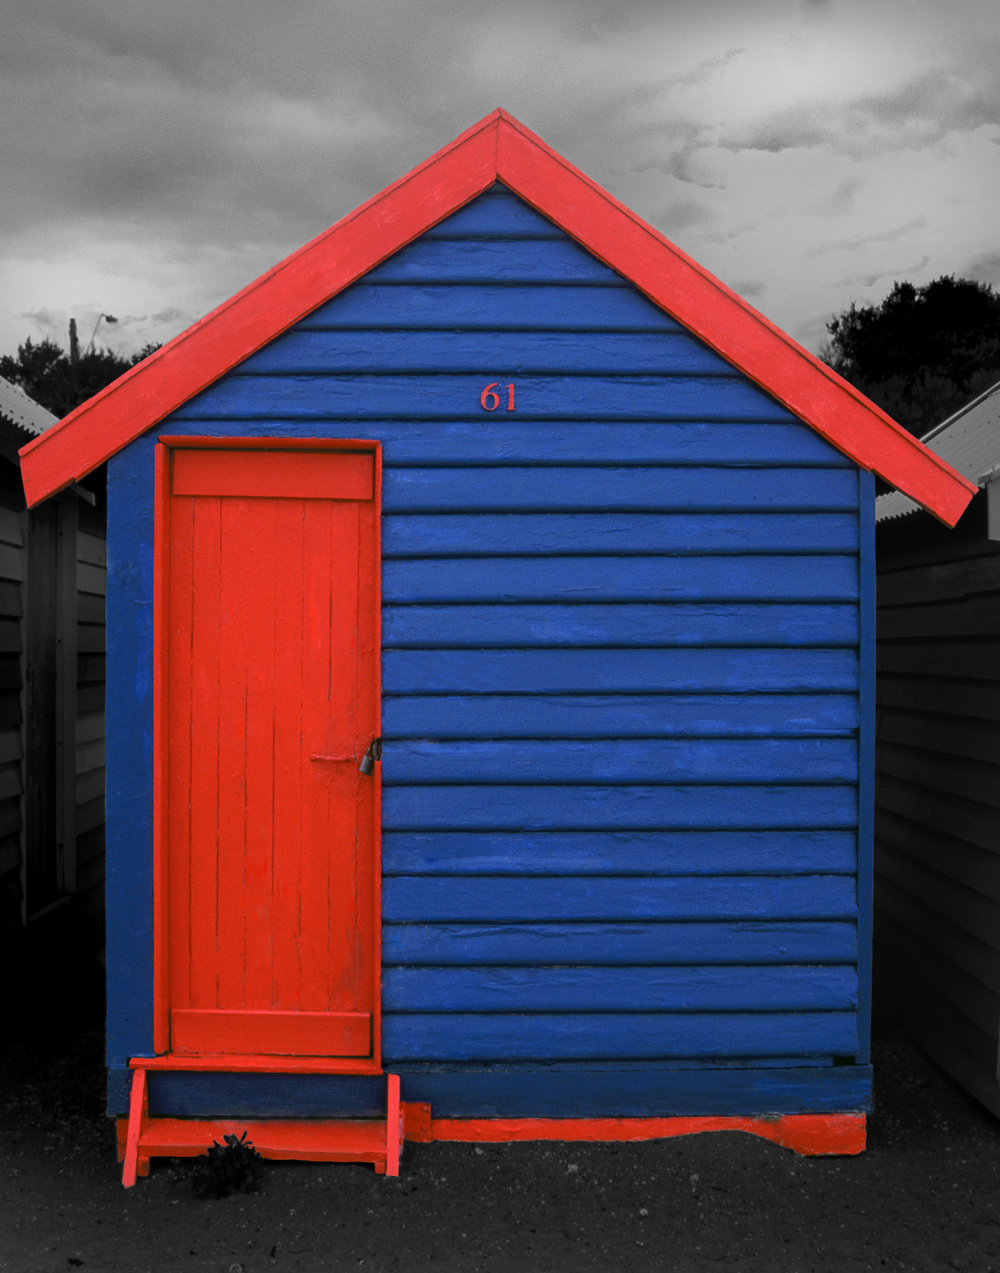 Judy Gelles,  Beach Box No. 61 , 2003  Digital pigment print, 8 x 10 in, edition of 20; 11 x 14 in, edition of 25; 16 x 20 in, edition of 25   Inquire